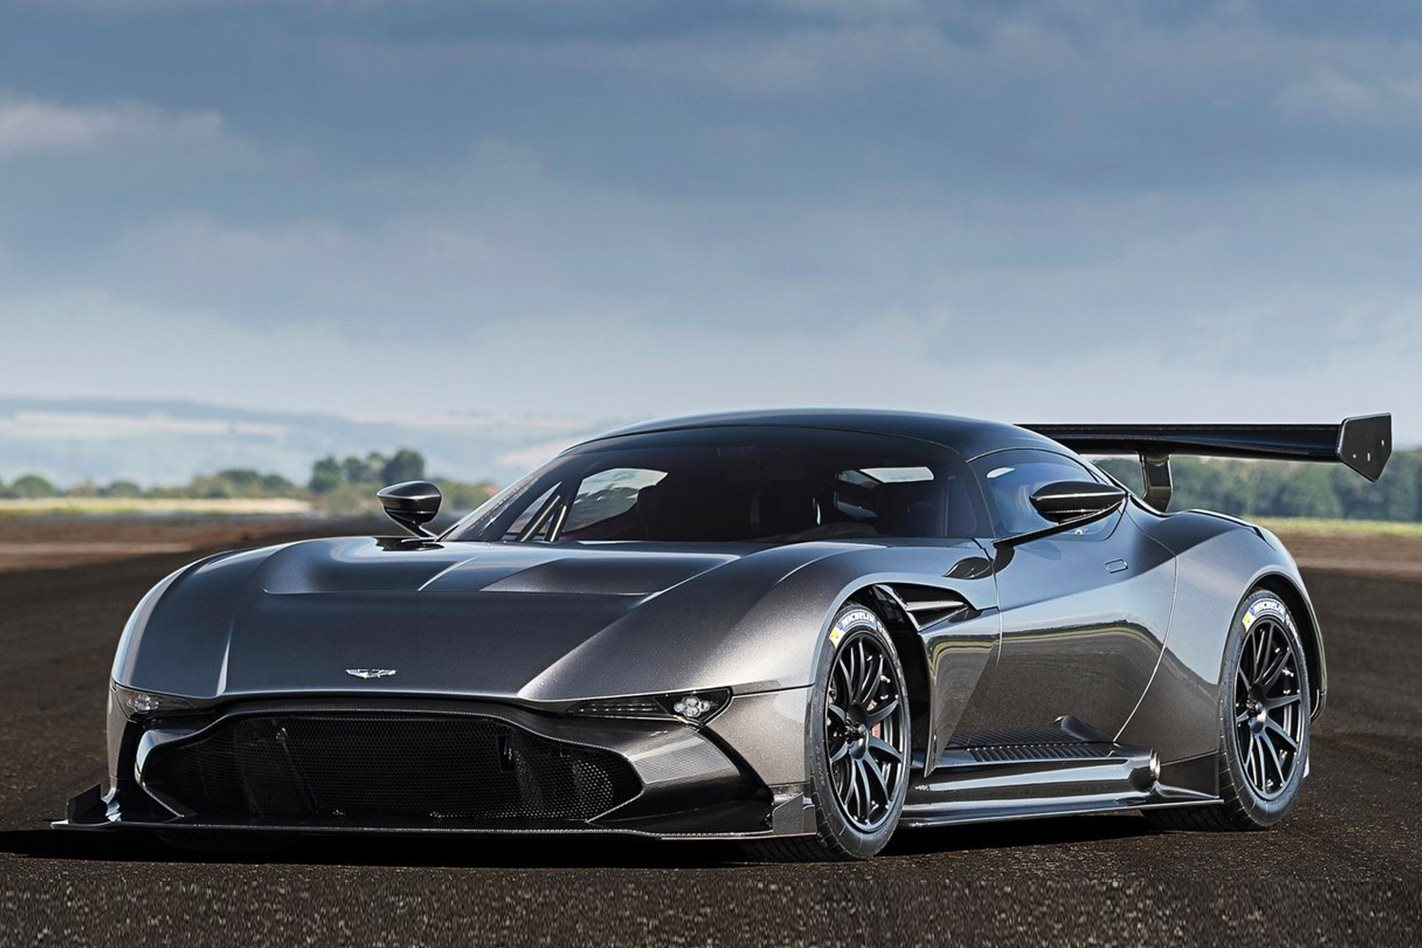 Road Legal Aston Martin Vulcan Announced